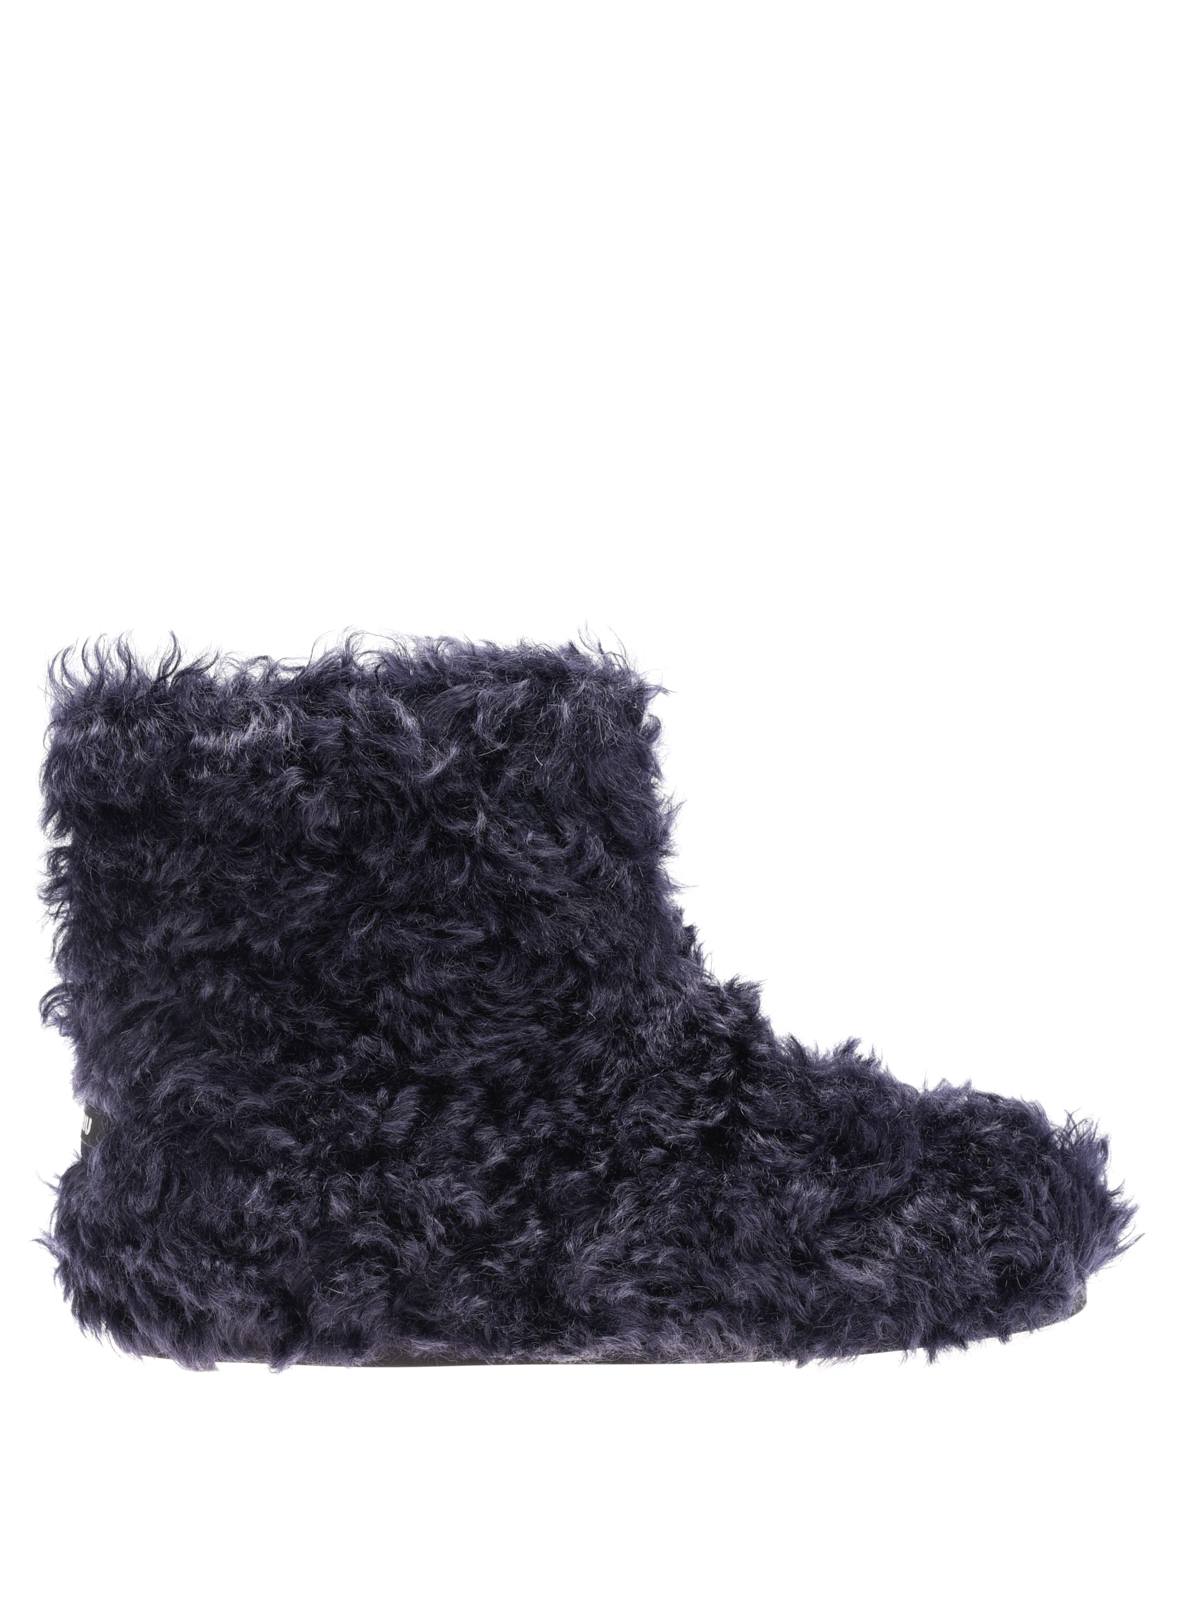 Miu Miu Eco shearling boots buy cheap free shipping zQjgV